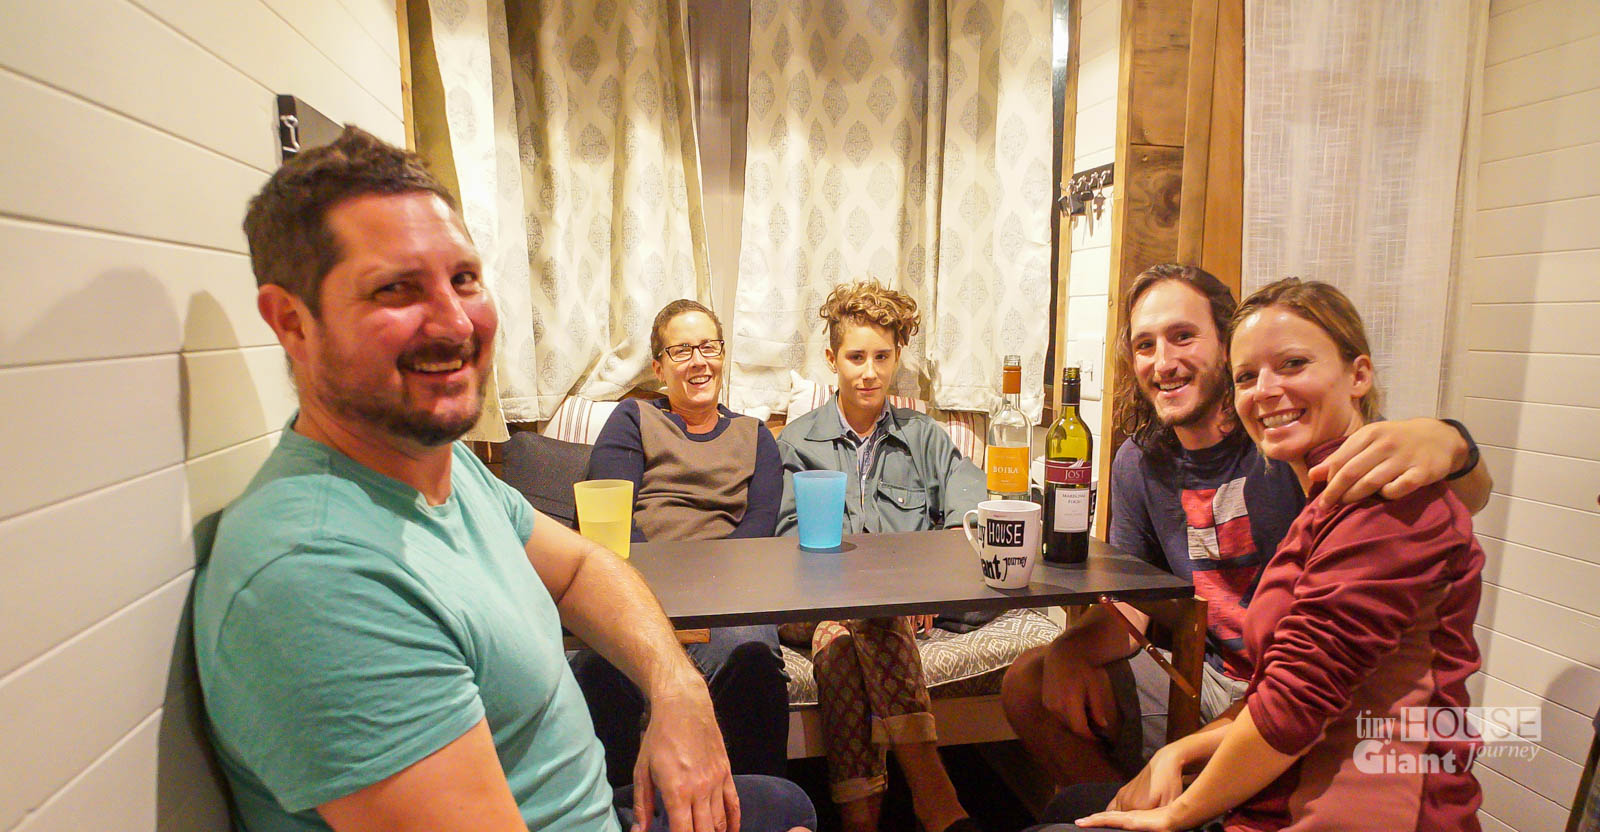 Party of Five! Dinner in the tiny house